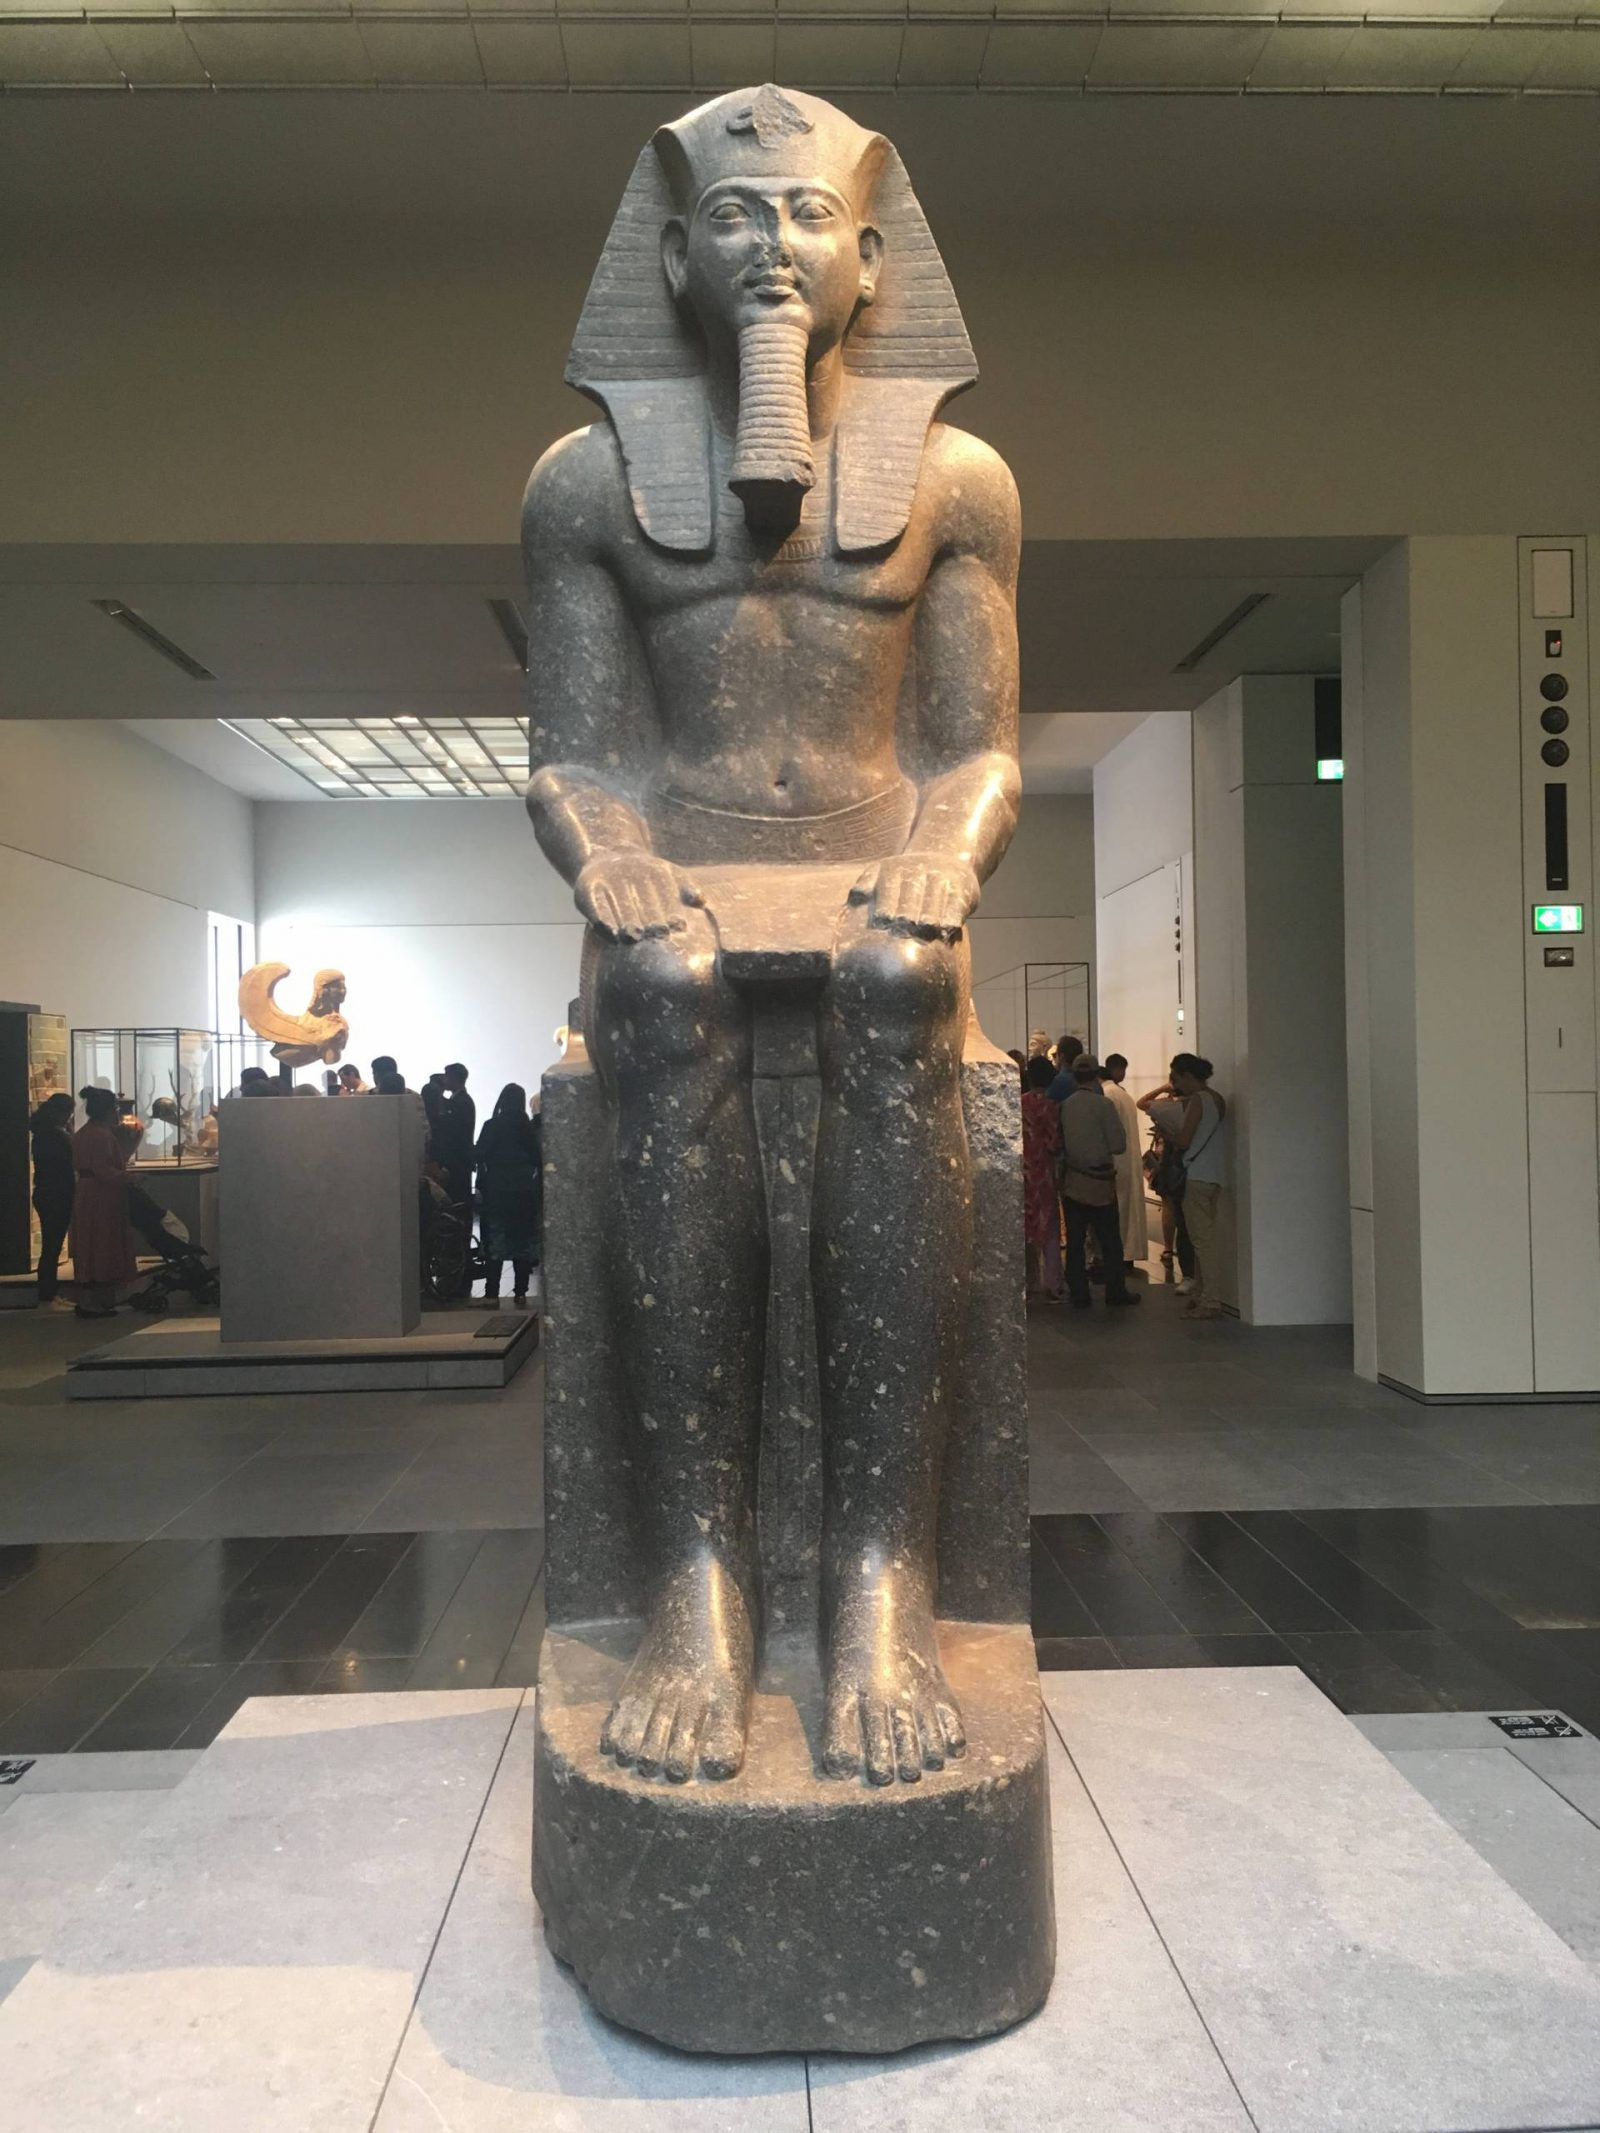 6 Things To Do in Abu Dhabi, Ramses II statue